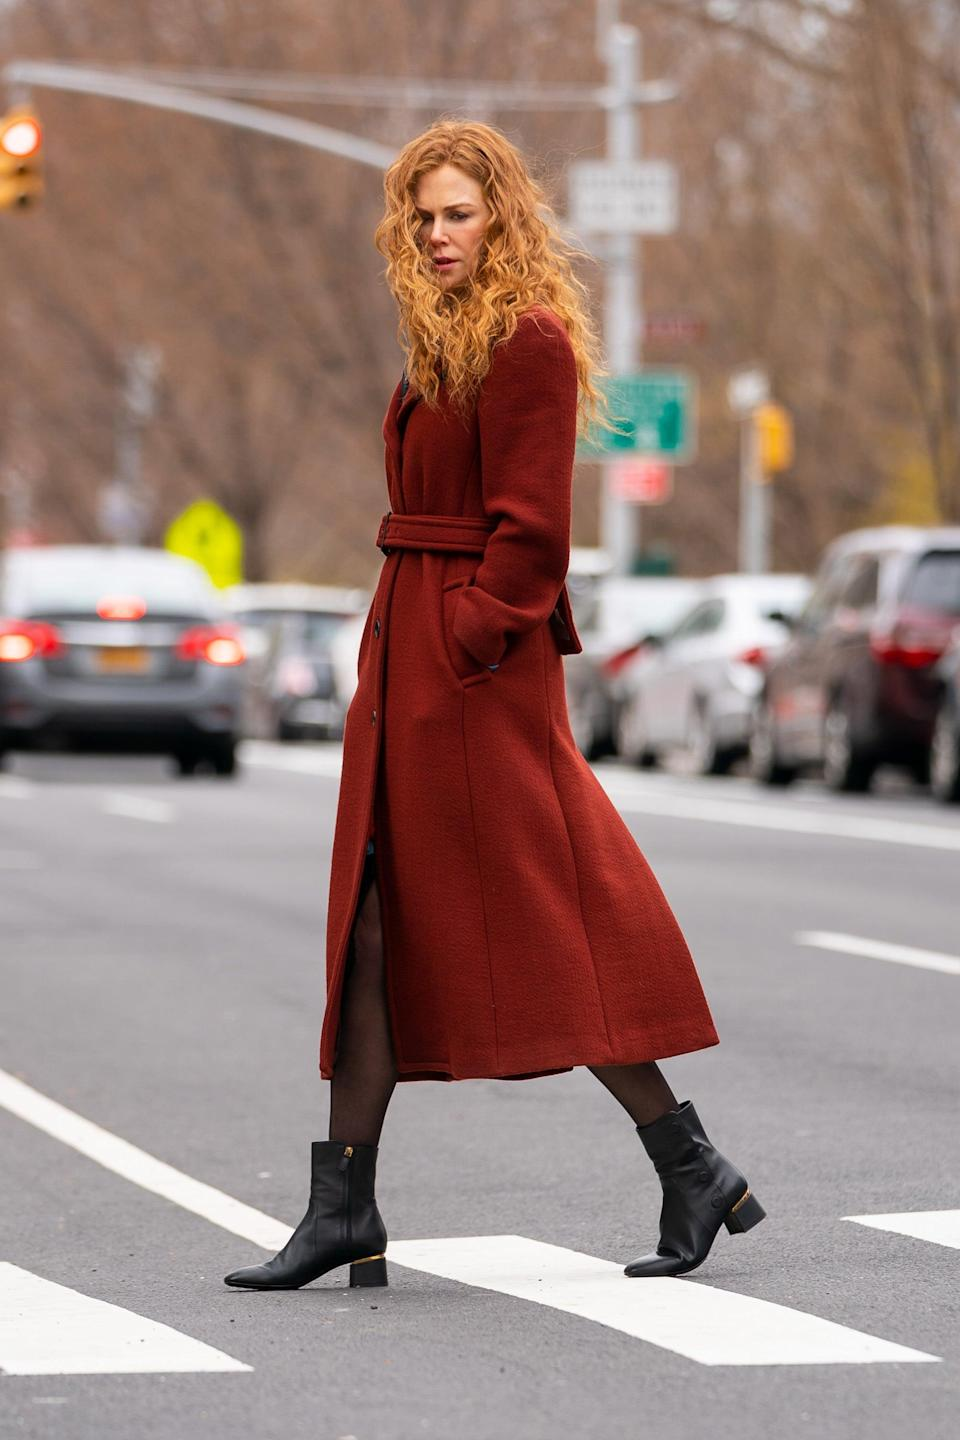 <p>Is it just me, or could this totally serve as a 3.1 Phillip Lim advertisement? It definitely makes me crave that coat!</p>